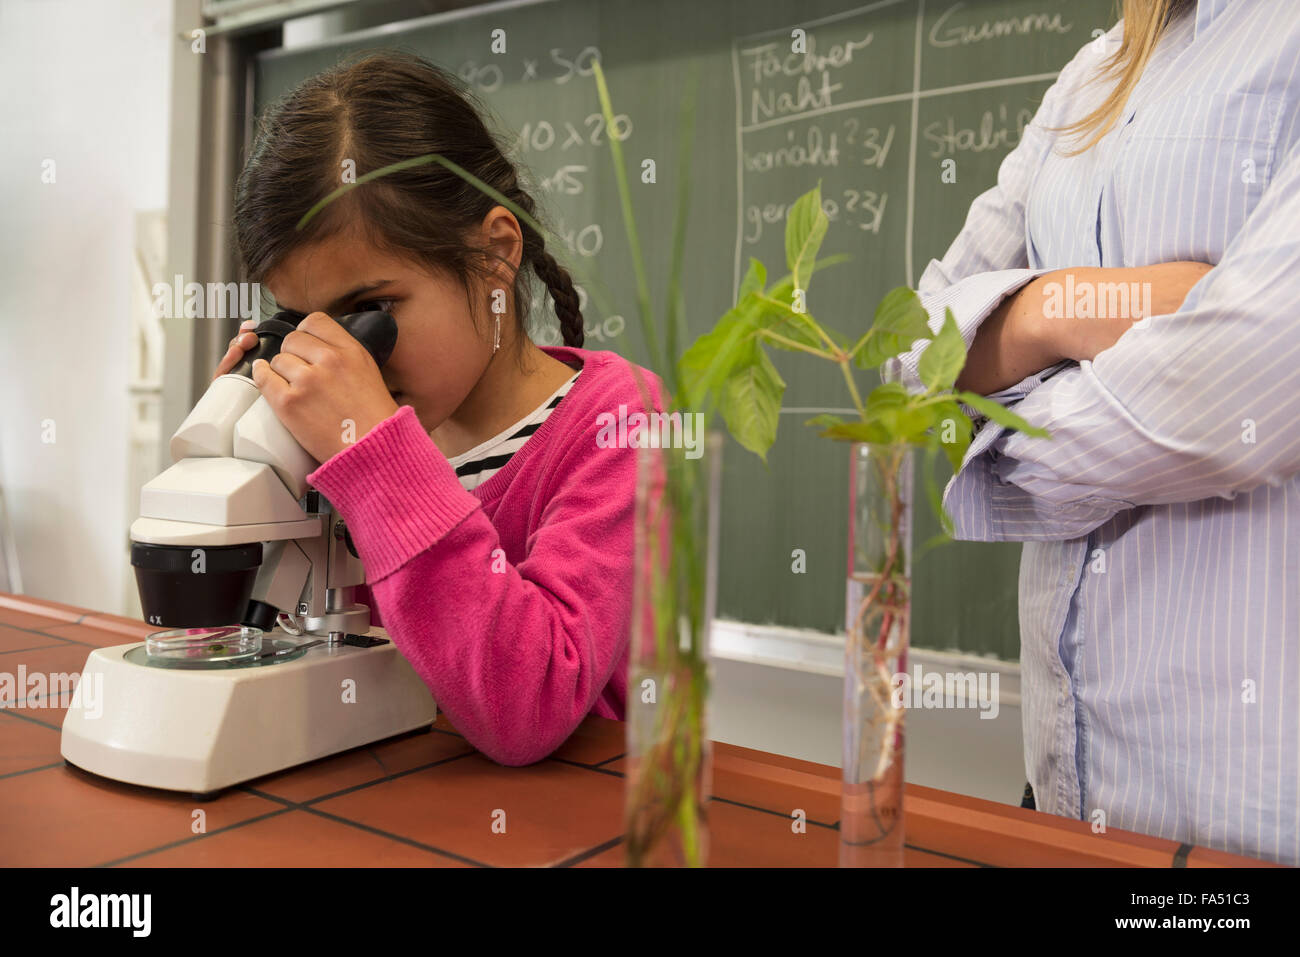 School girl with teacher looking through a microscope, Fürstenfeldbruck, Bavaria, Germany - Stock Image